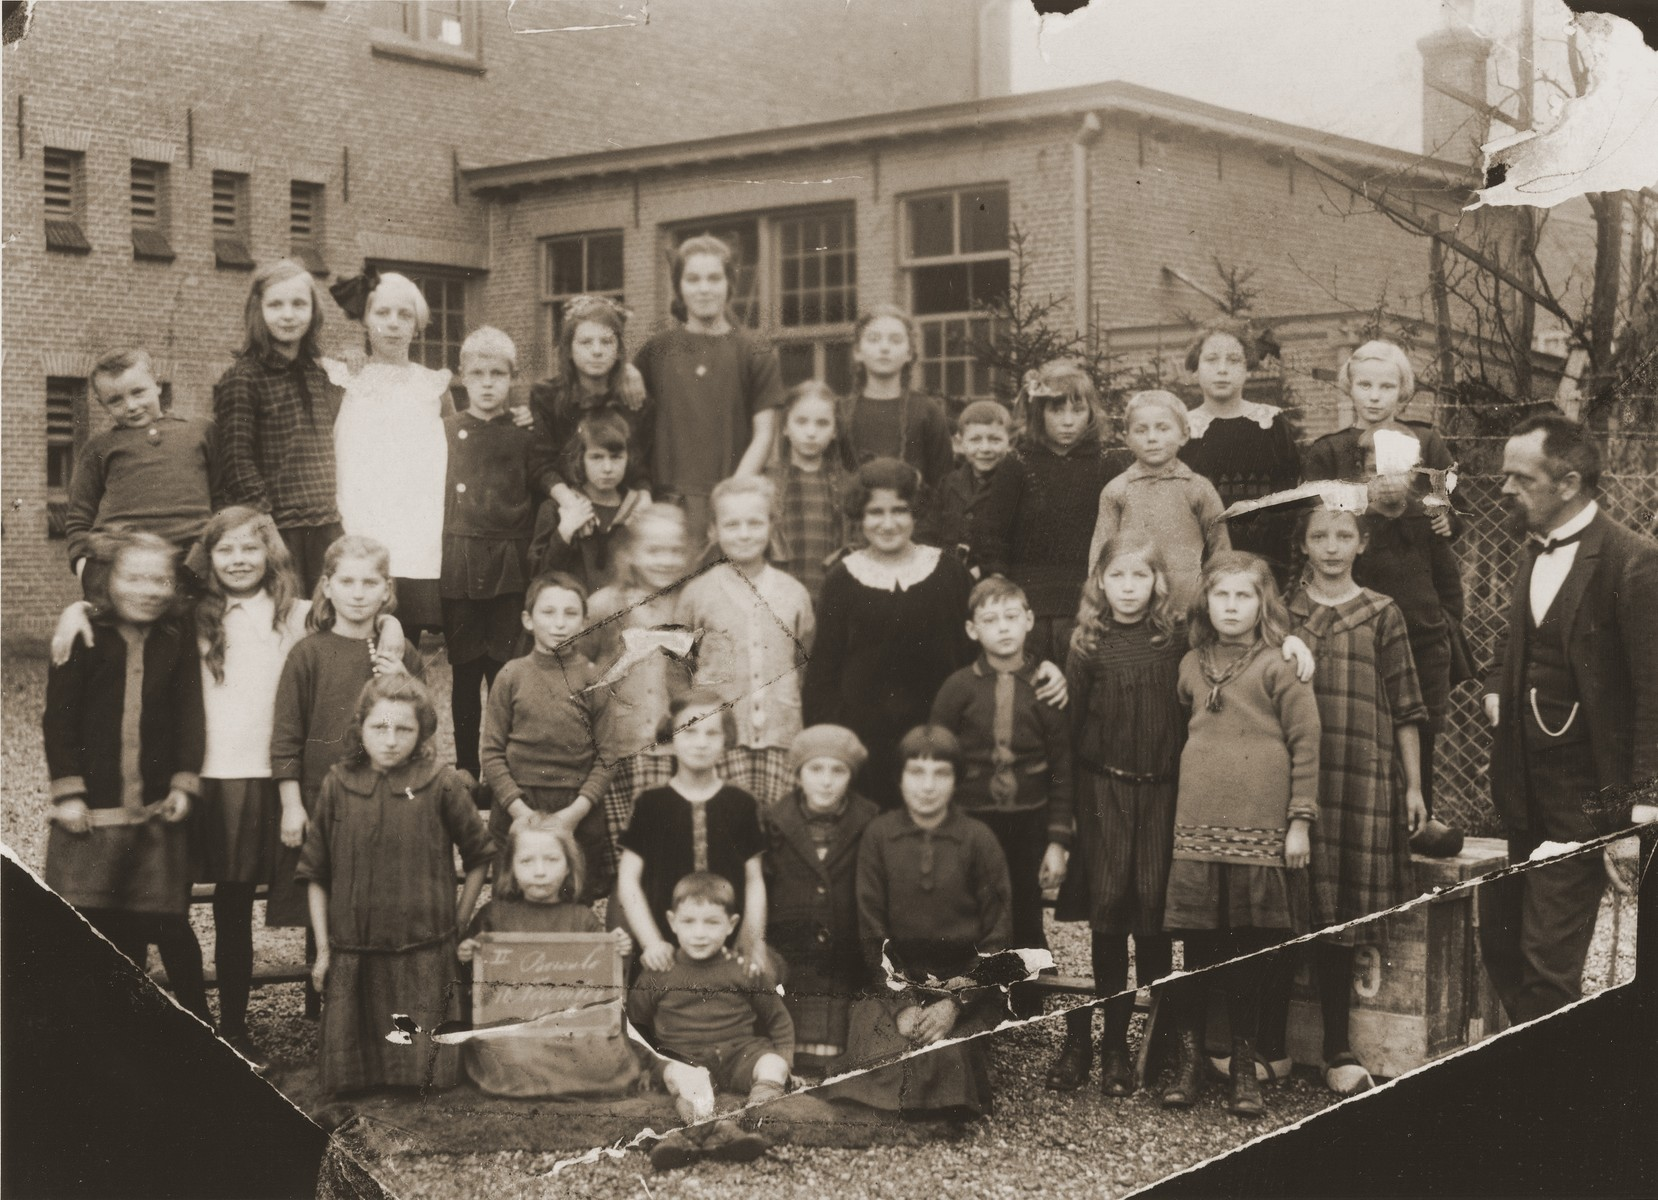 Group portrait of Dutch pupils at a public elementary school in Boekelo.  Among those pictured are: Michel Meijer (back row, fourth from the right, the short boy with bangs) Lou Slosser (second row from the front, third from the right); Richard Meijer (second row from the front, fourth from the left); Izak Meijer (little boy in front); Bettie Meijer (behind Izak); Bep Meijer (front row, wearing a beret); Renee (Sara) Meijer (front row, right side).